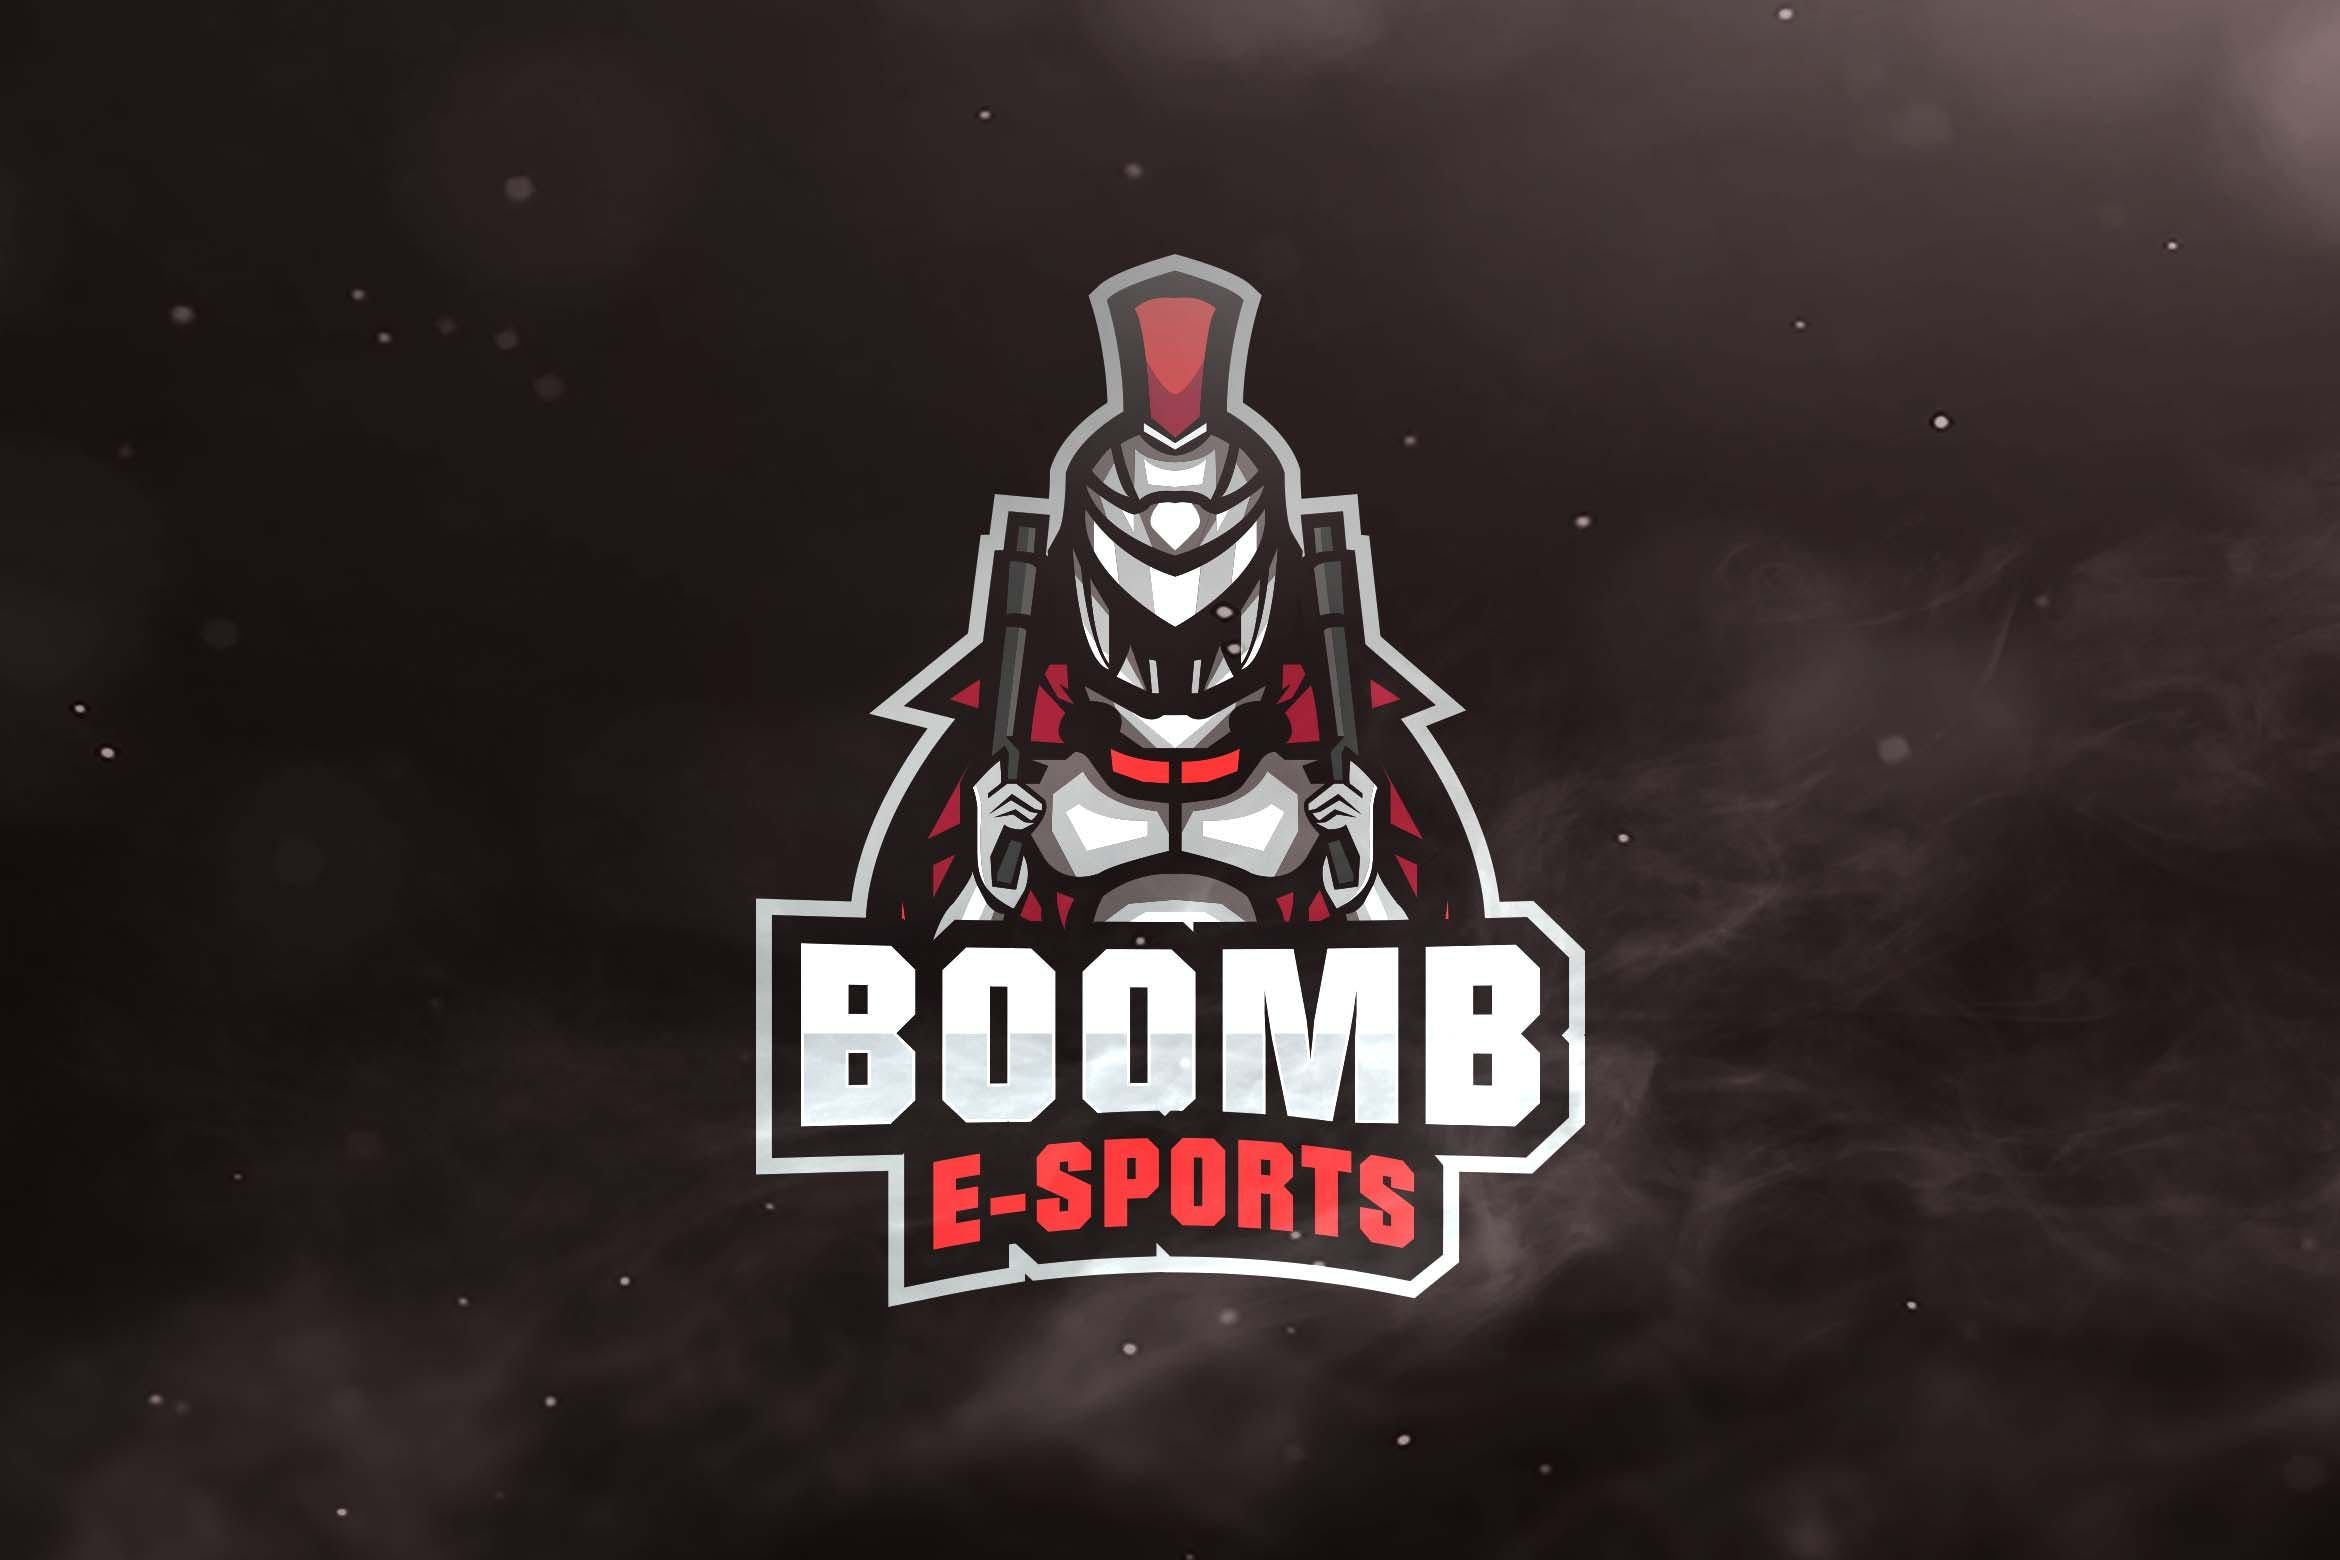 Boom Sport And Esports Logos By Ovozdigital On Envato Elements Esports Logo Graphic Design Services Logo Design